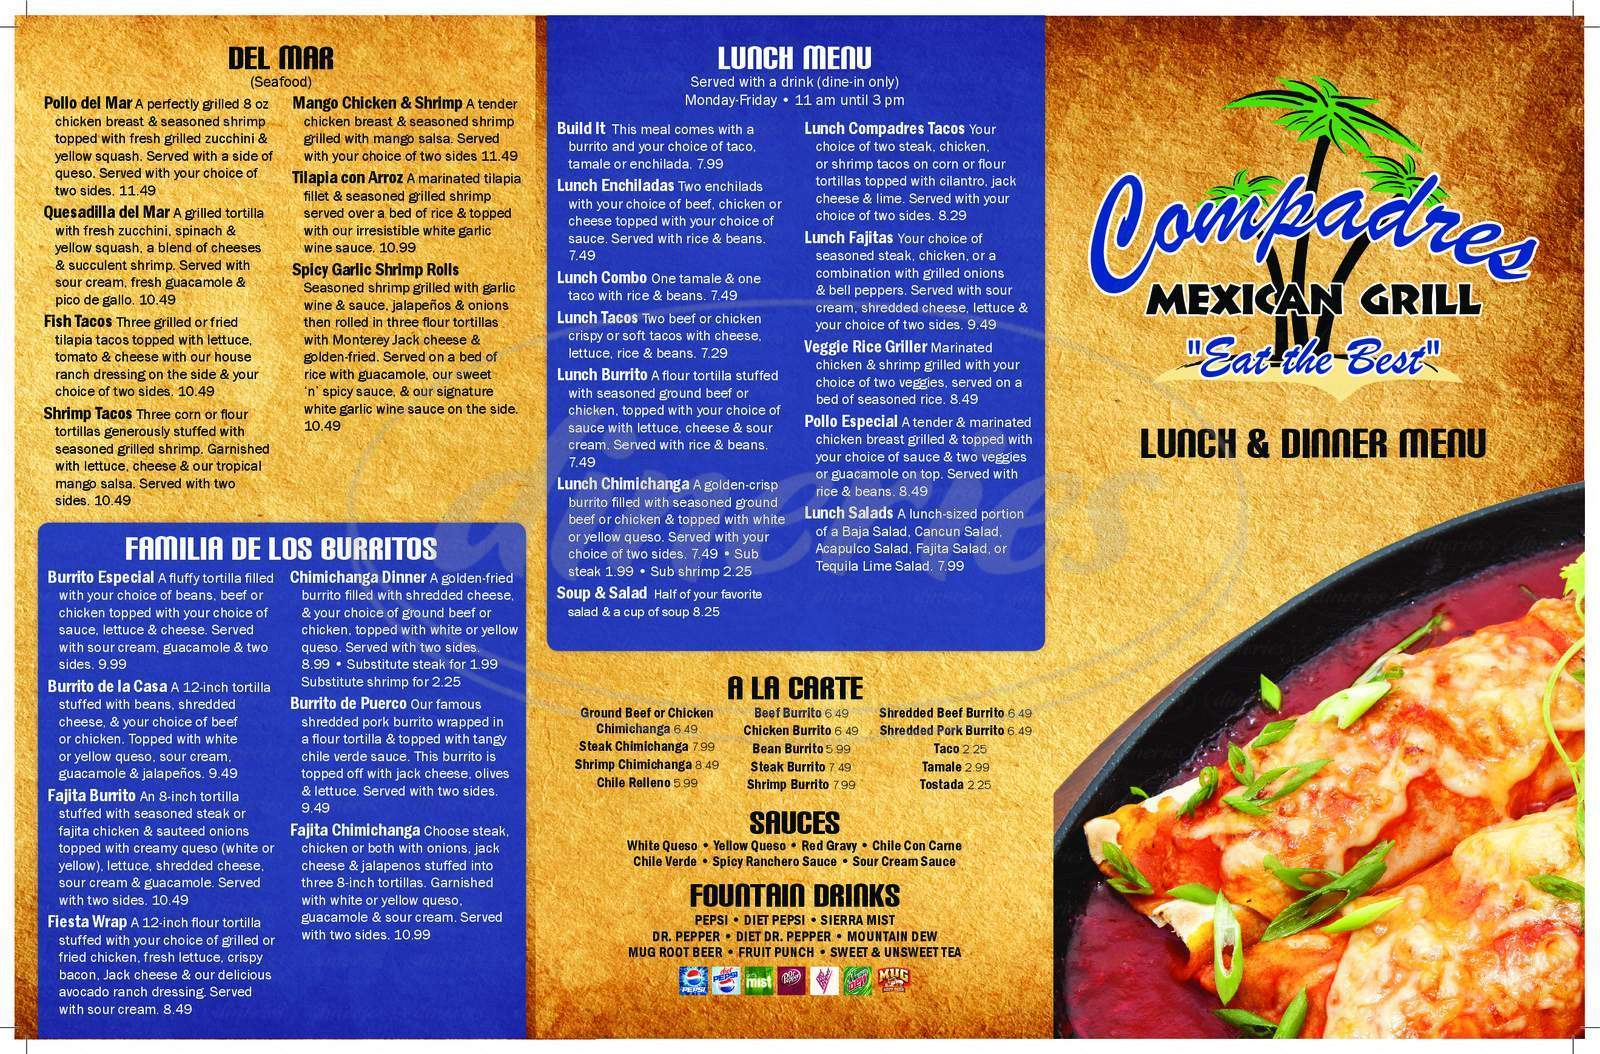 menu for Compadres Mexican Grill & Cantina